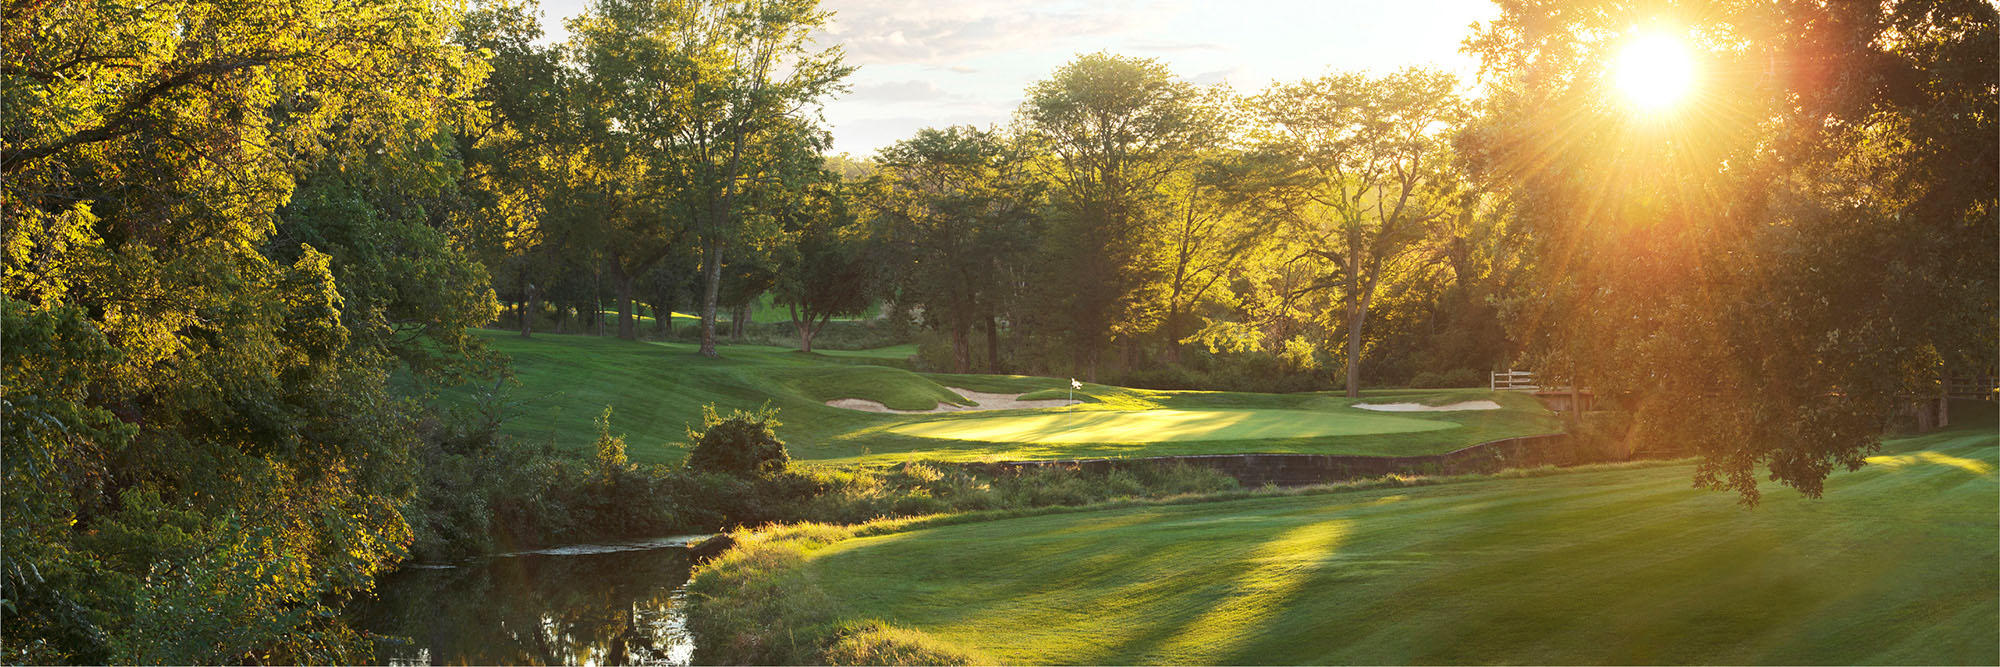 Golf Course Image - Wolf Creek No. 5